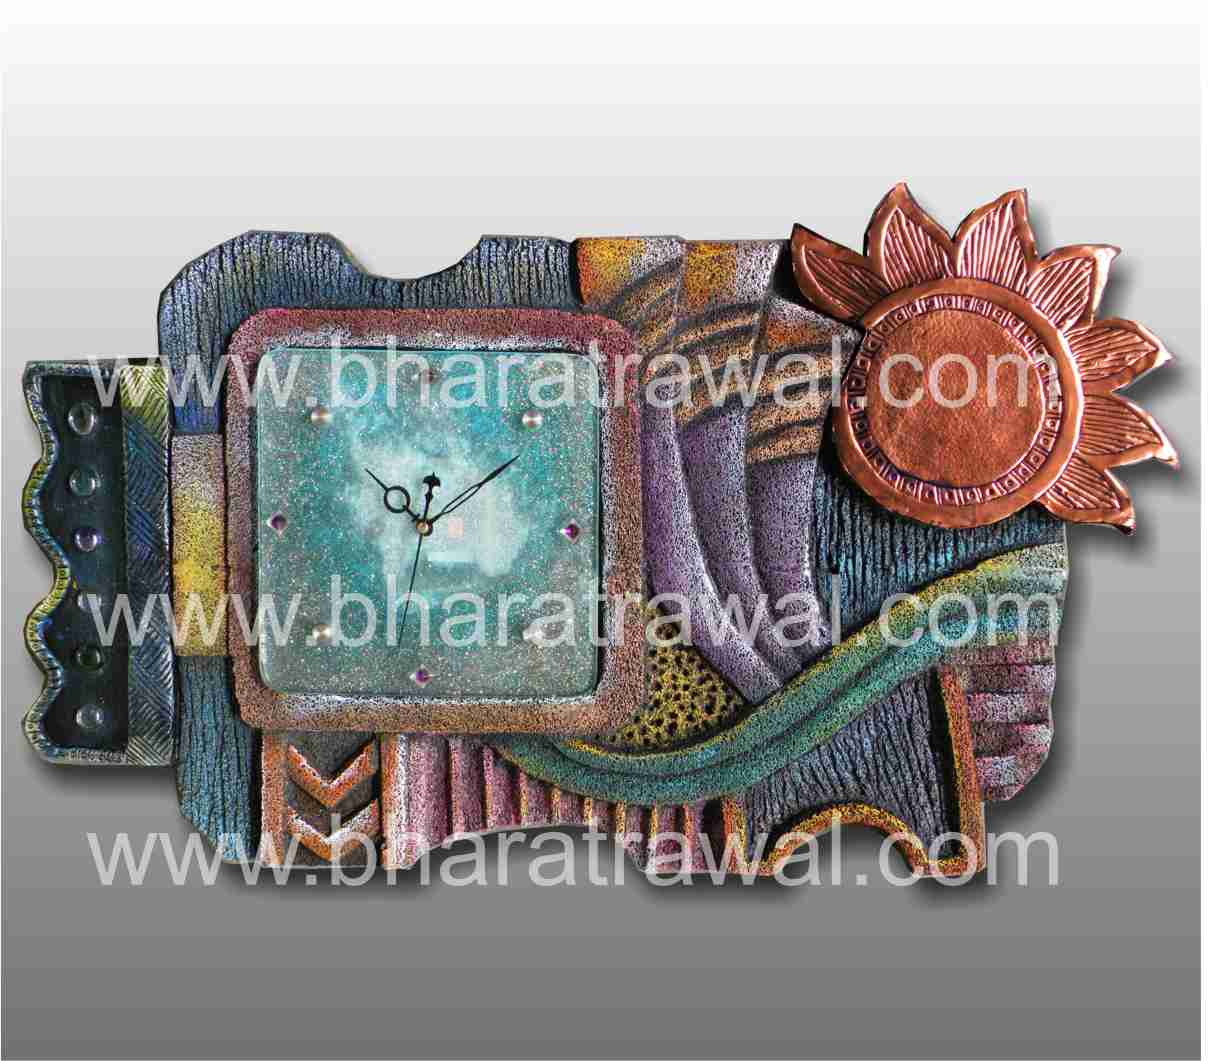 Mural art by muralguru bharat rawal april 2012 for Ceramic mural painting